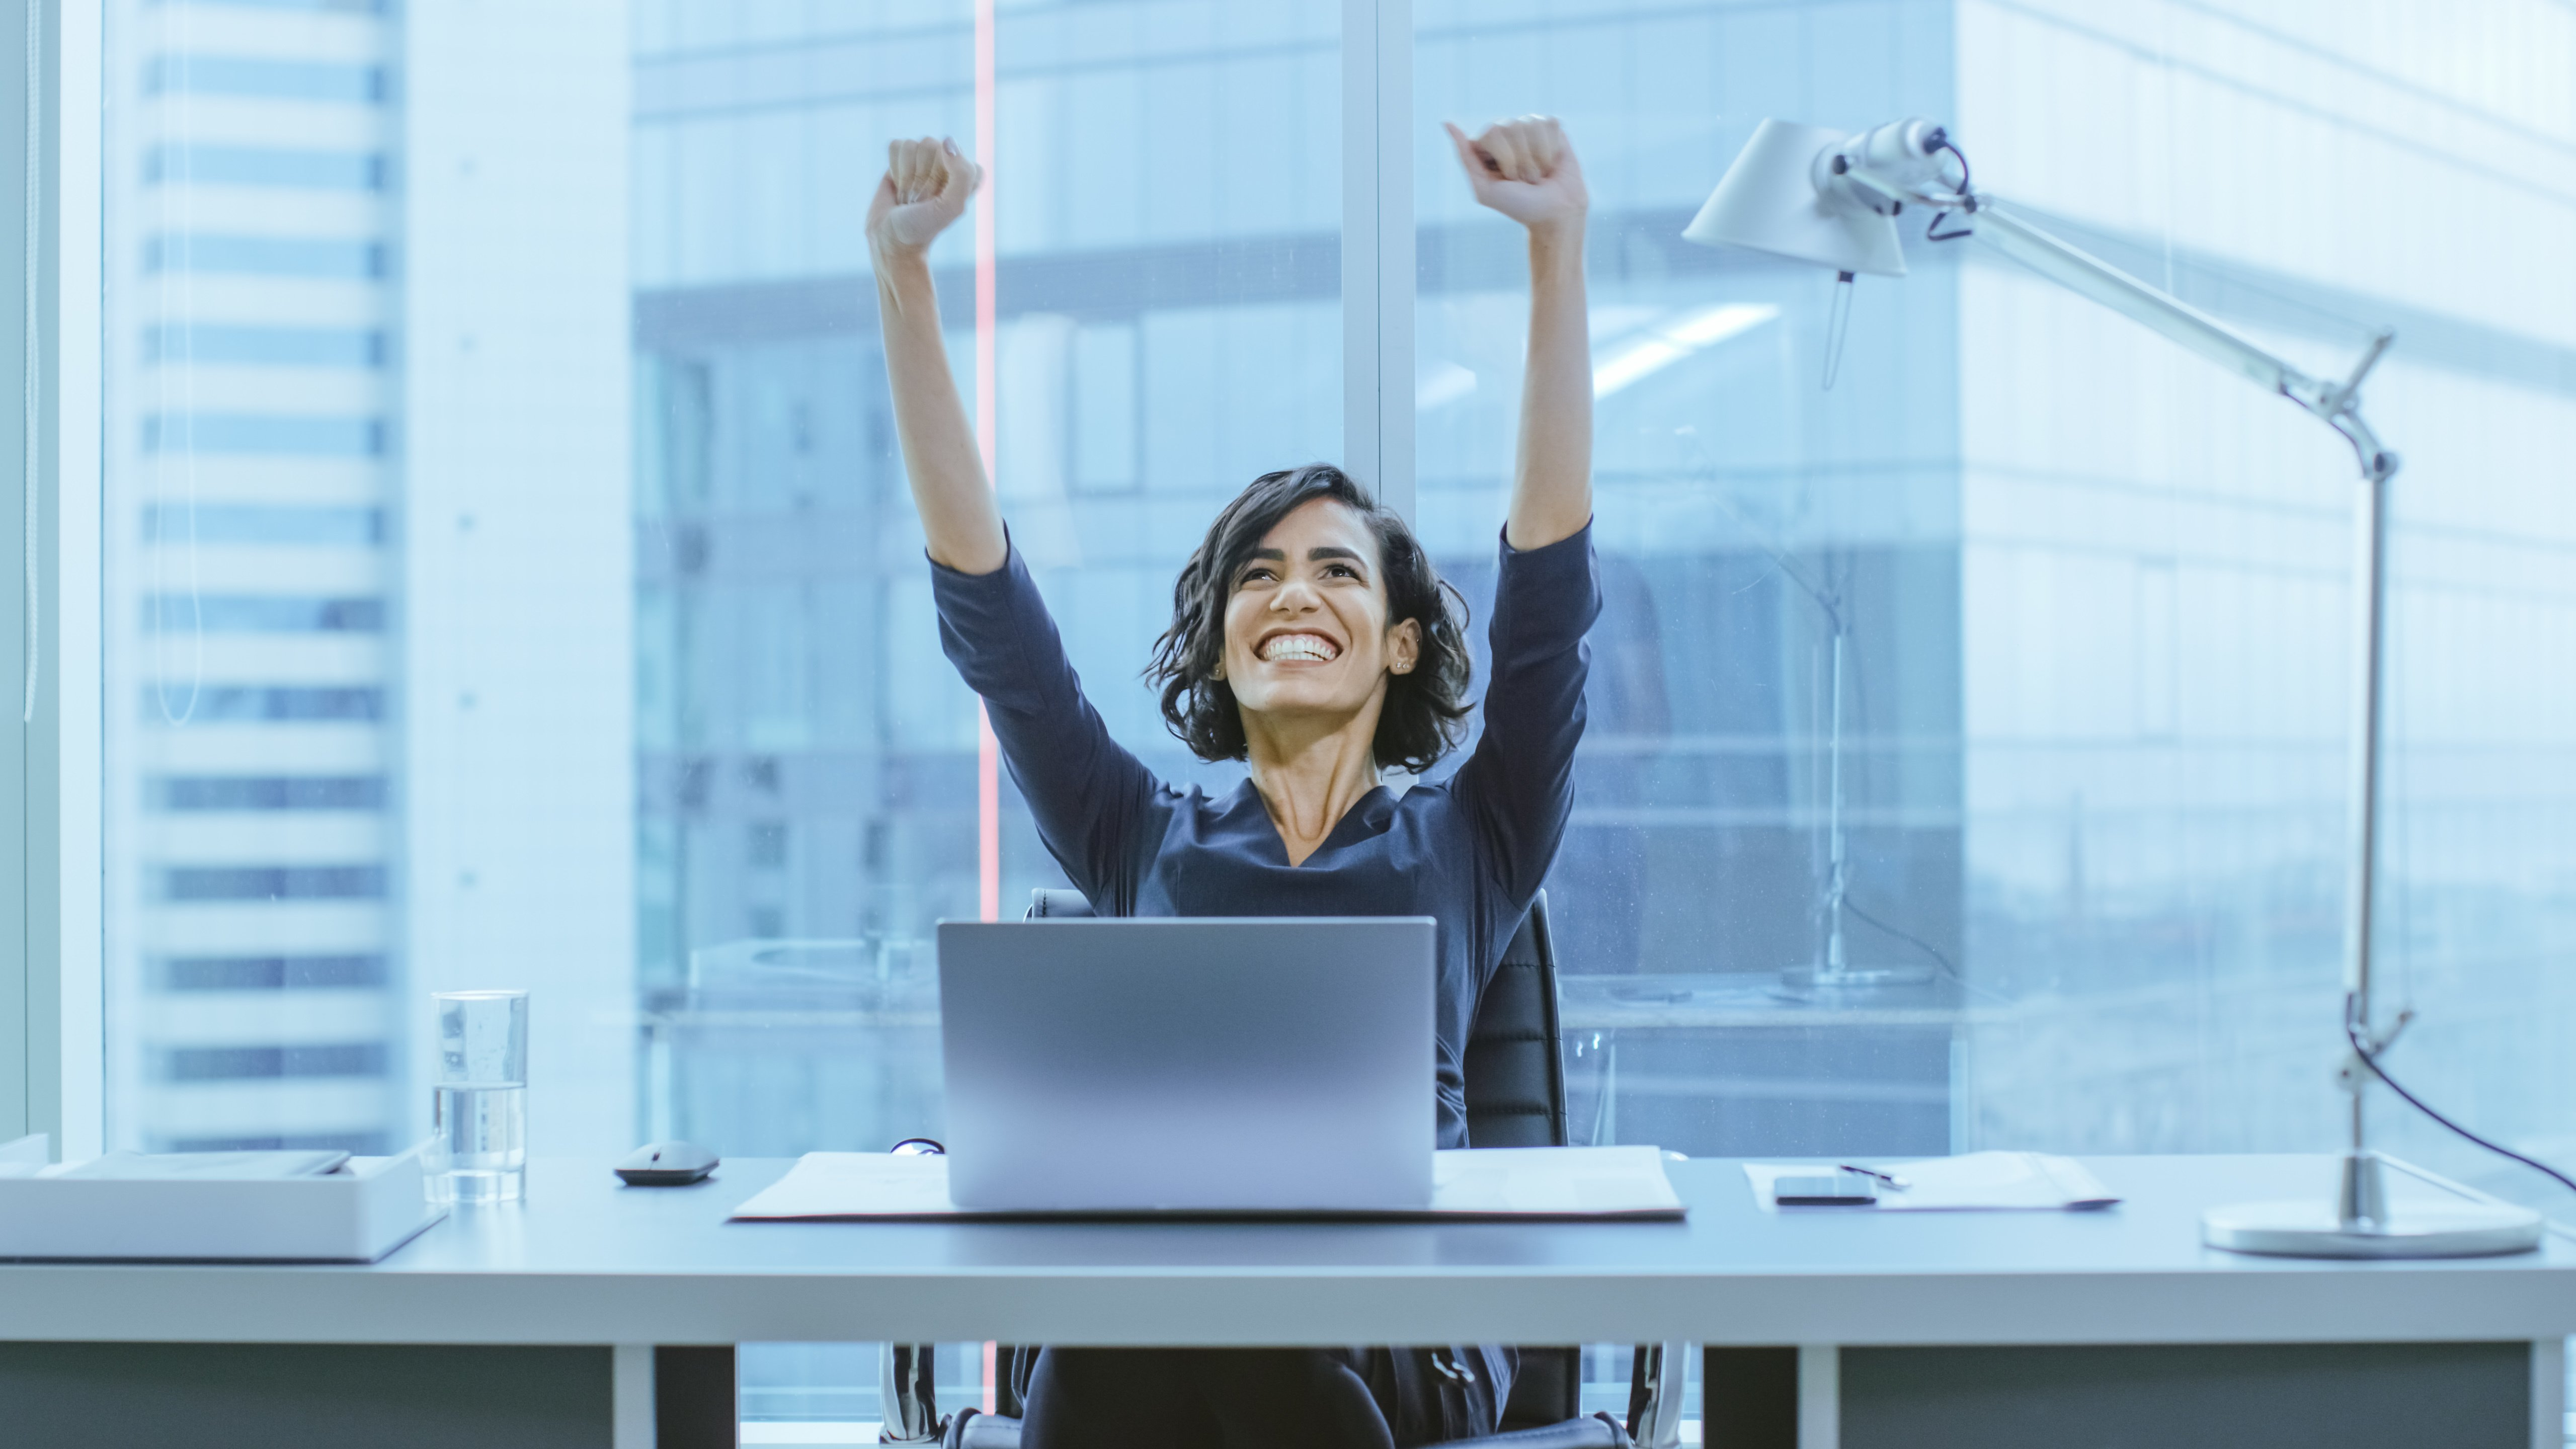 Shot of the Beautiful Businesswoman Sitting at Her Office Desk, Raising Her Arms in a Celebration of a Successful Job Promotion.